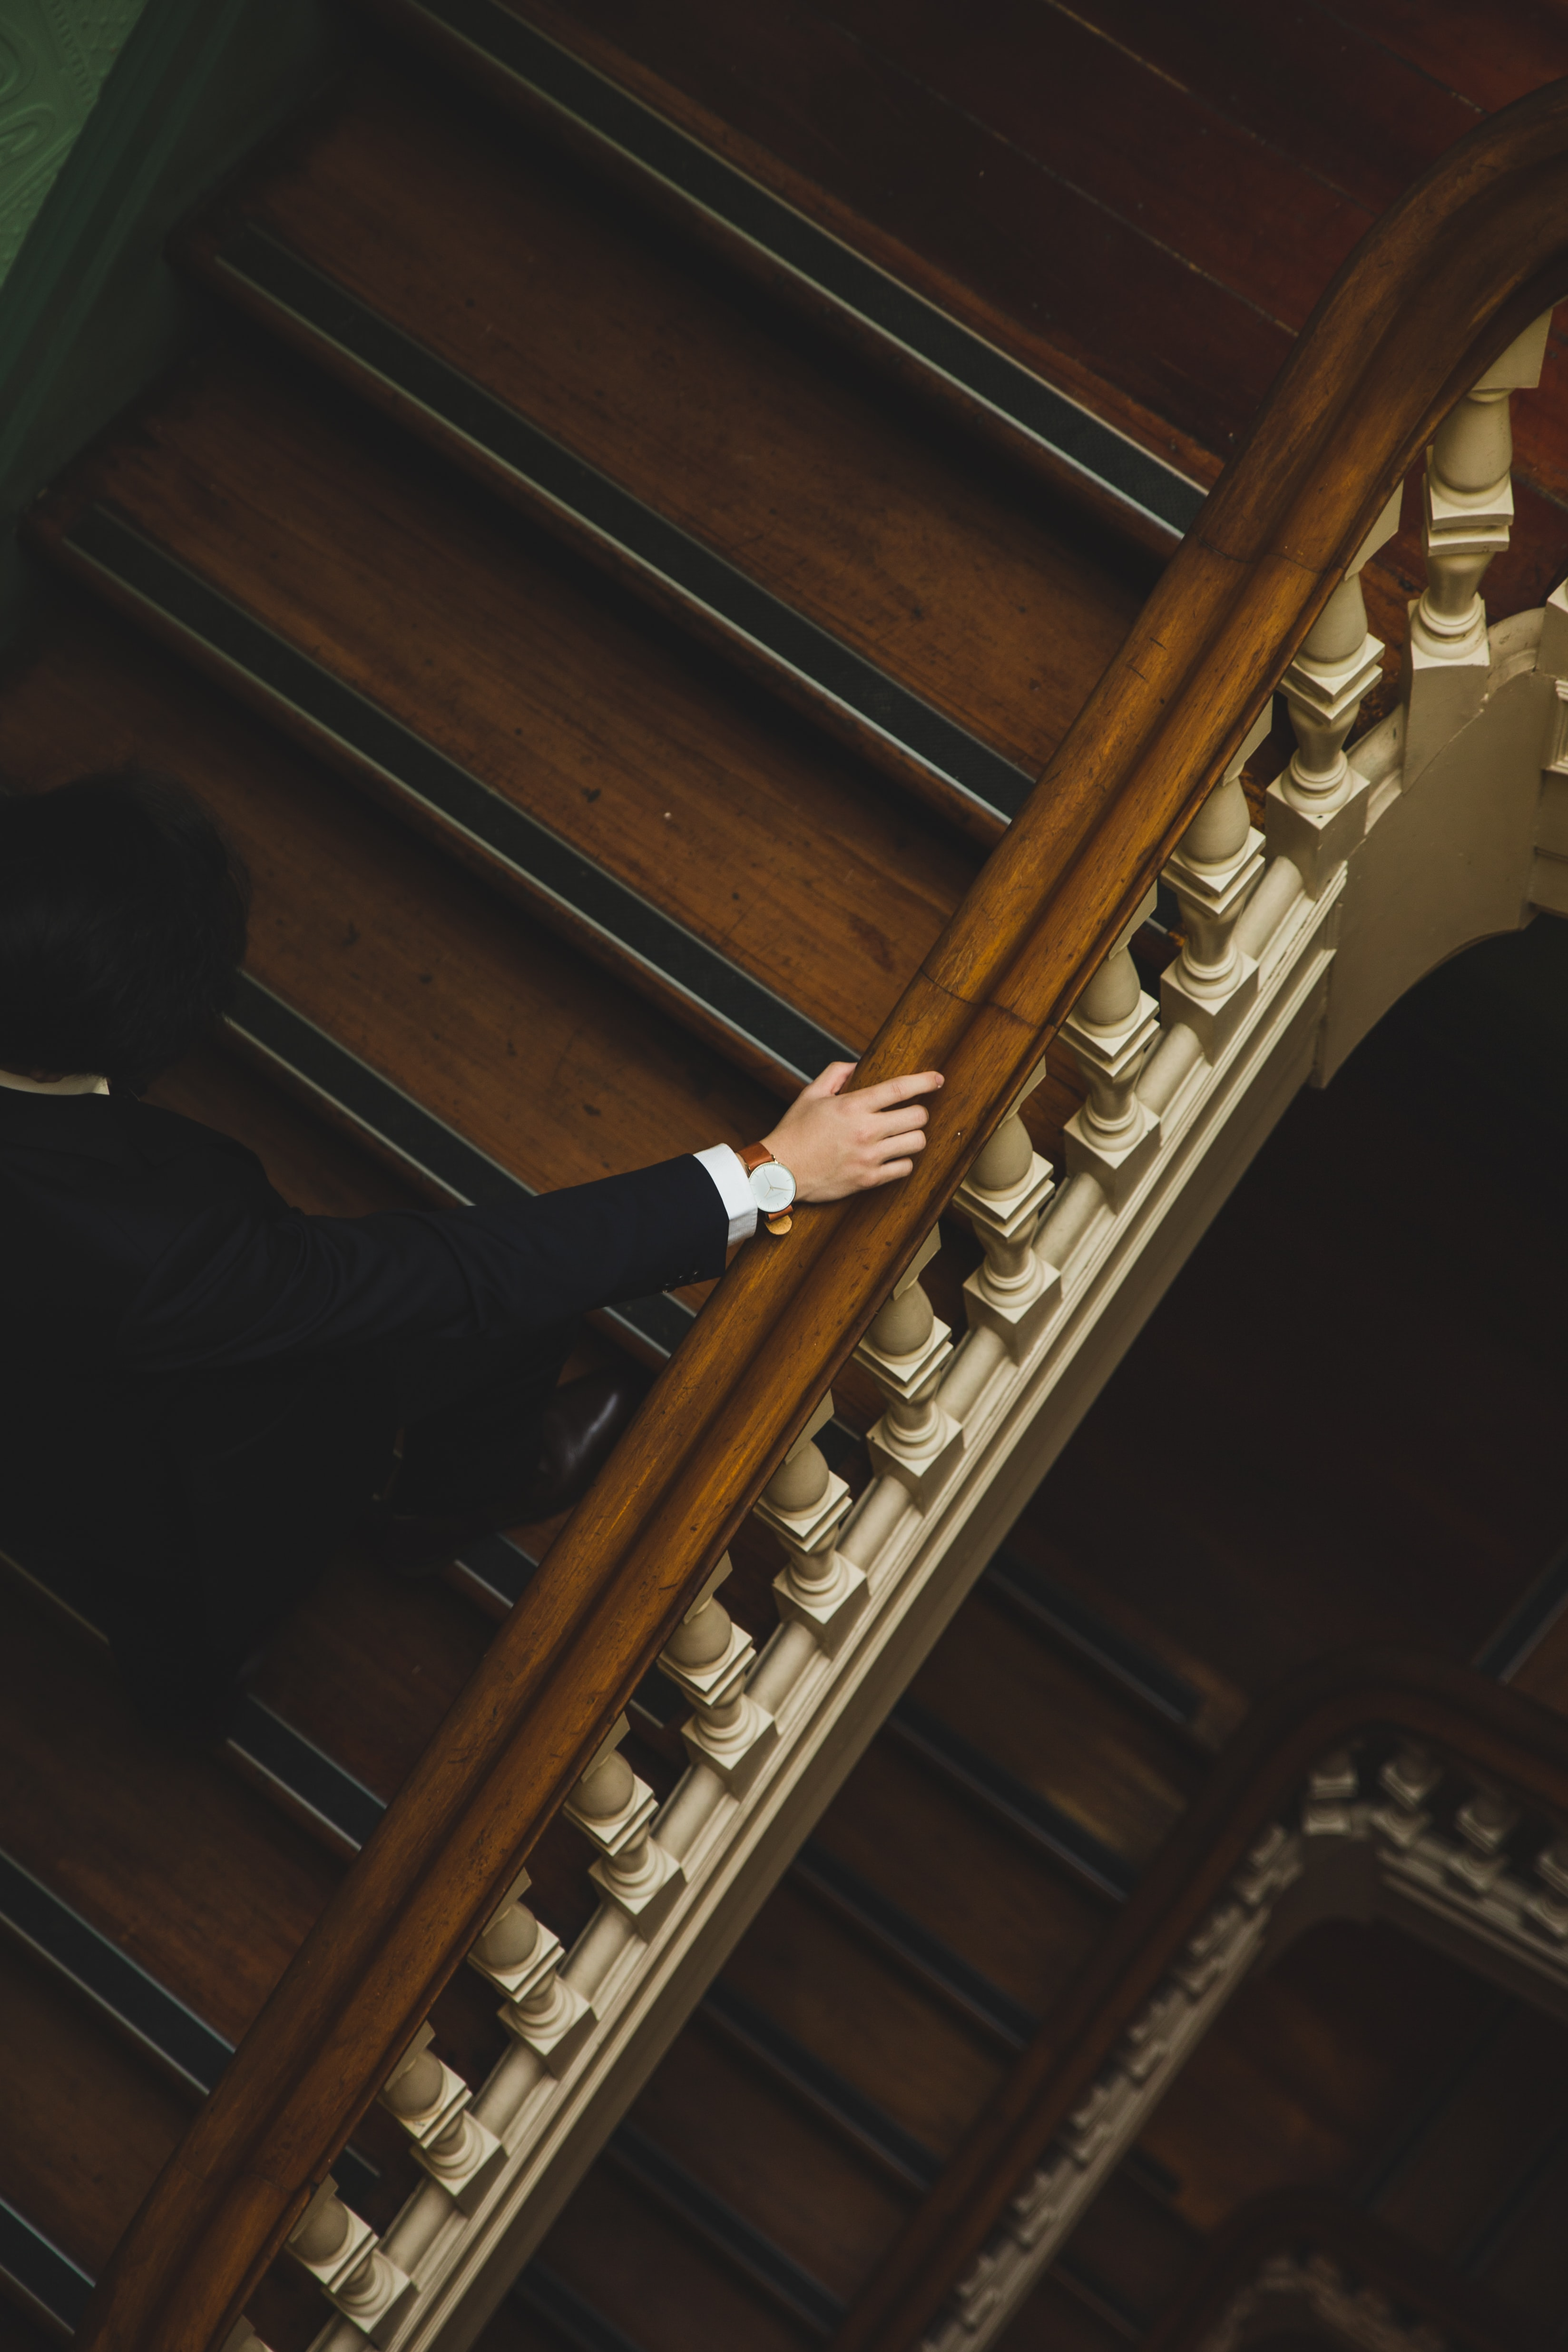 man climbing up the wooden stairs